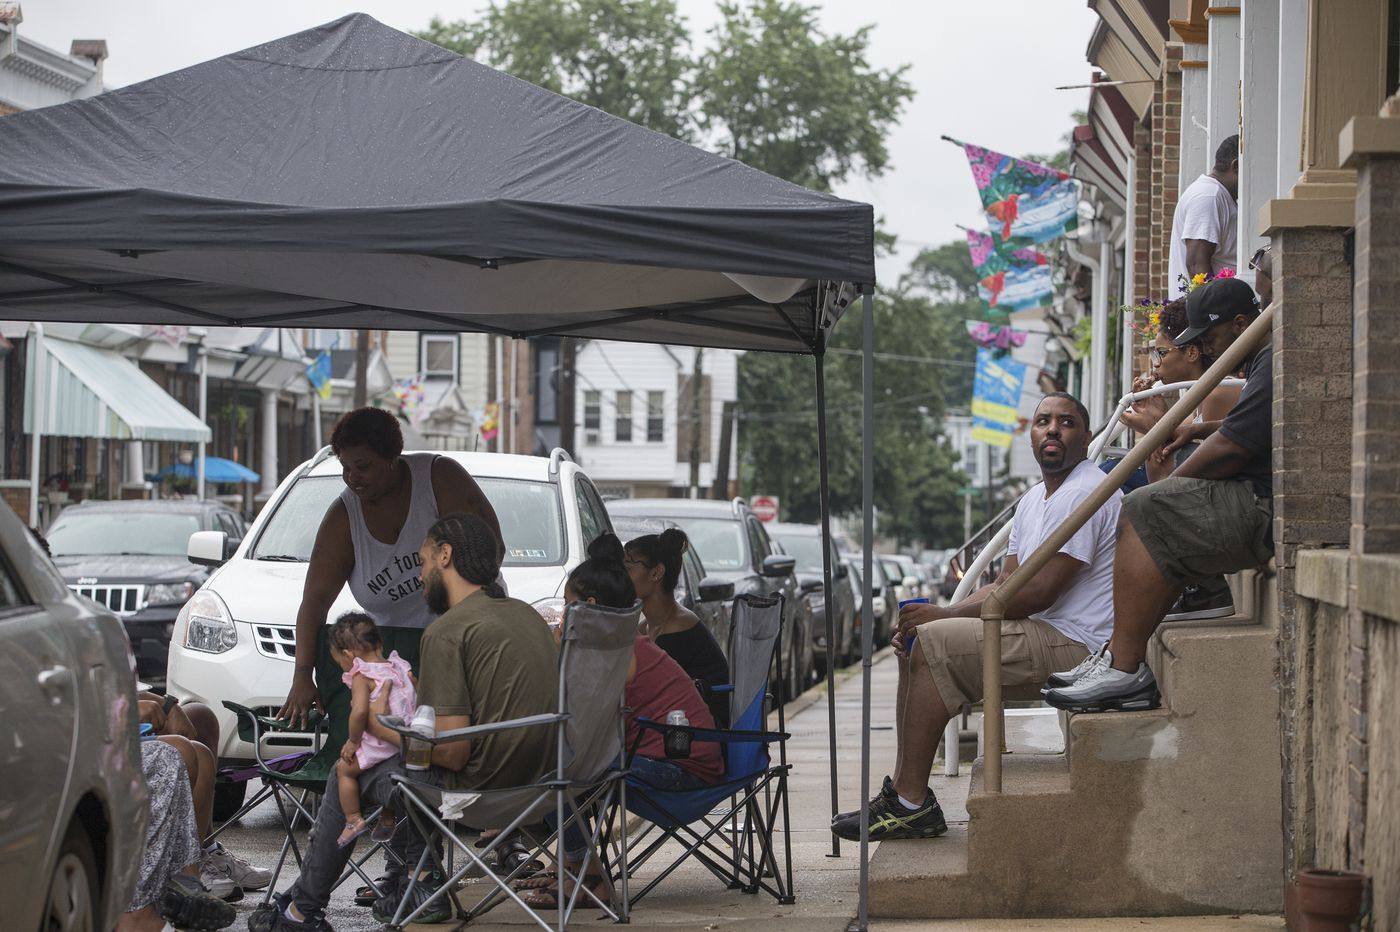 After beefs, Philadelphia makes it easier to host a block party